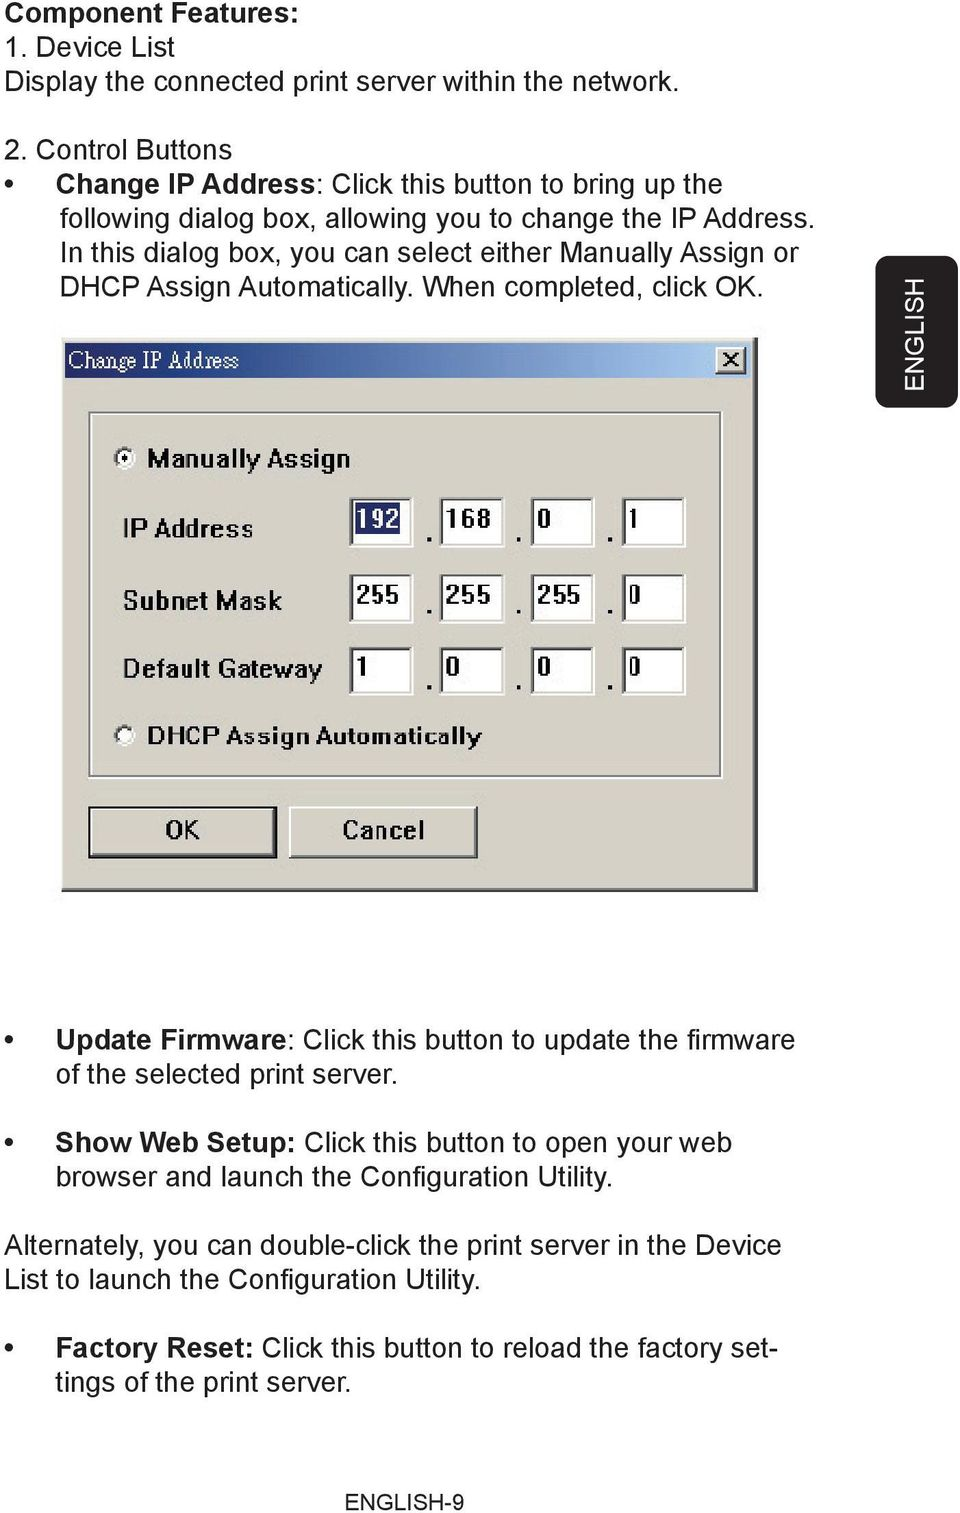 In this dialog box, you can select either Manually Assign or DHCP Assign Automatically. When completed, click OK.